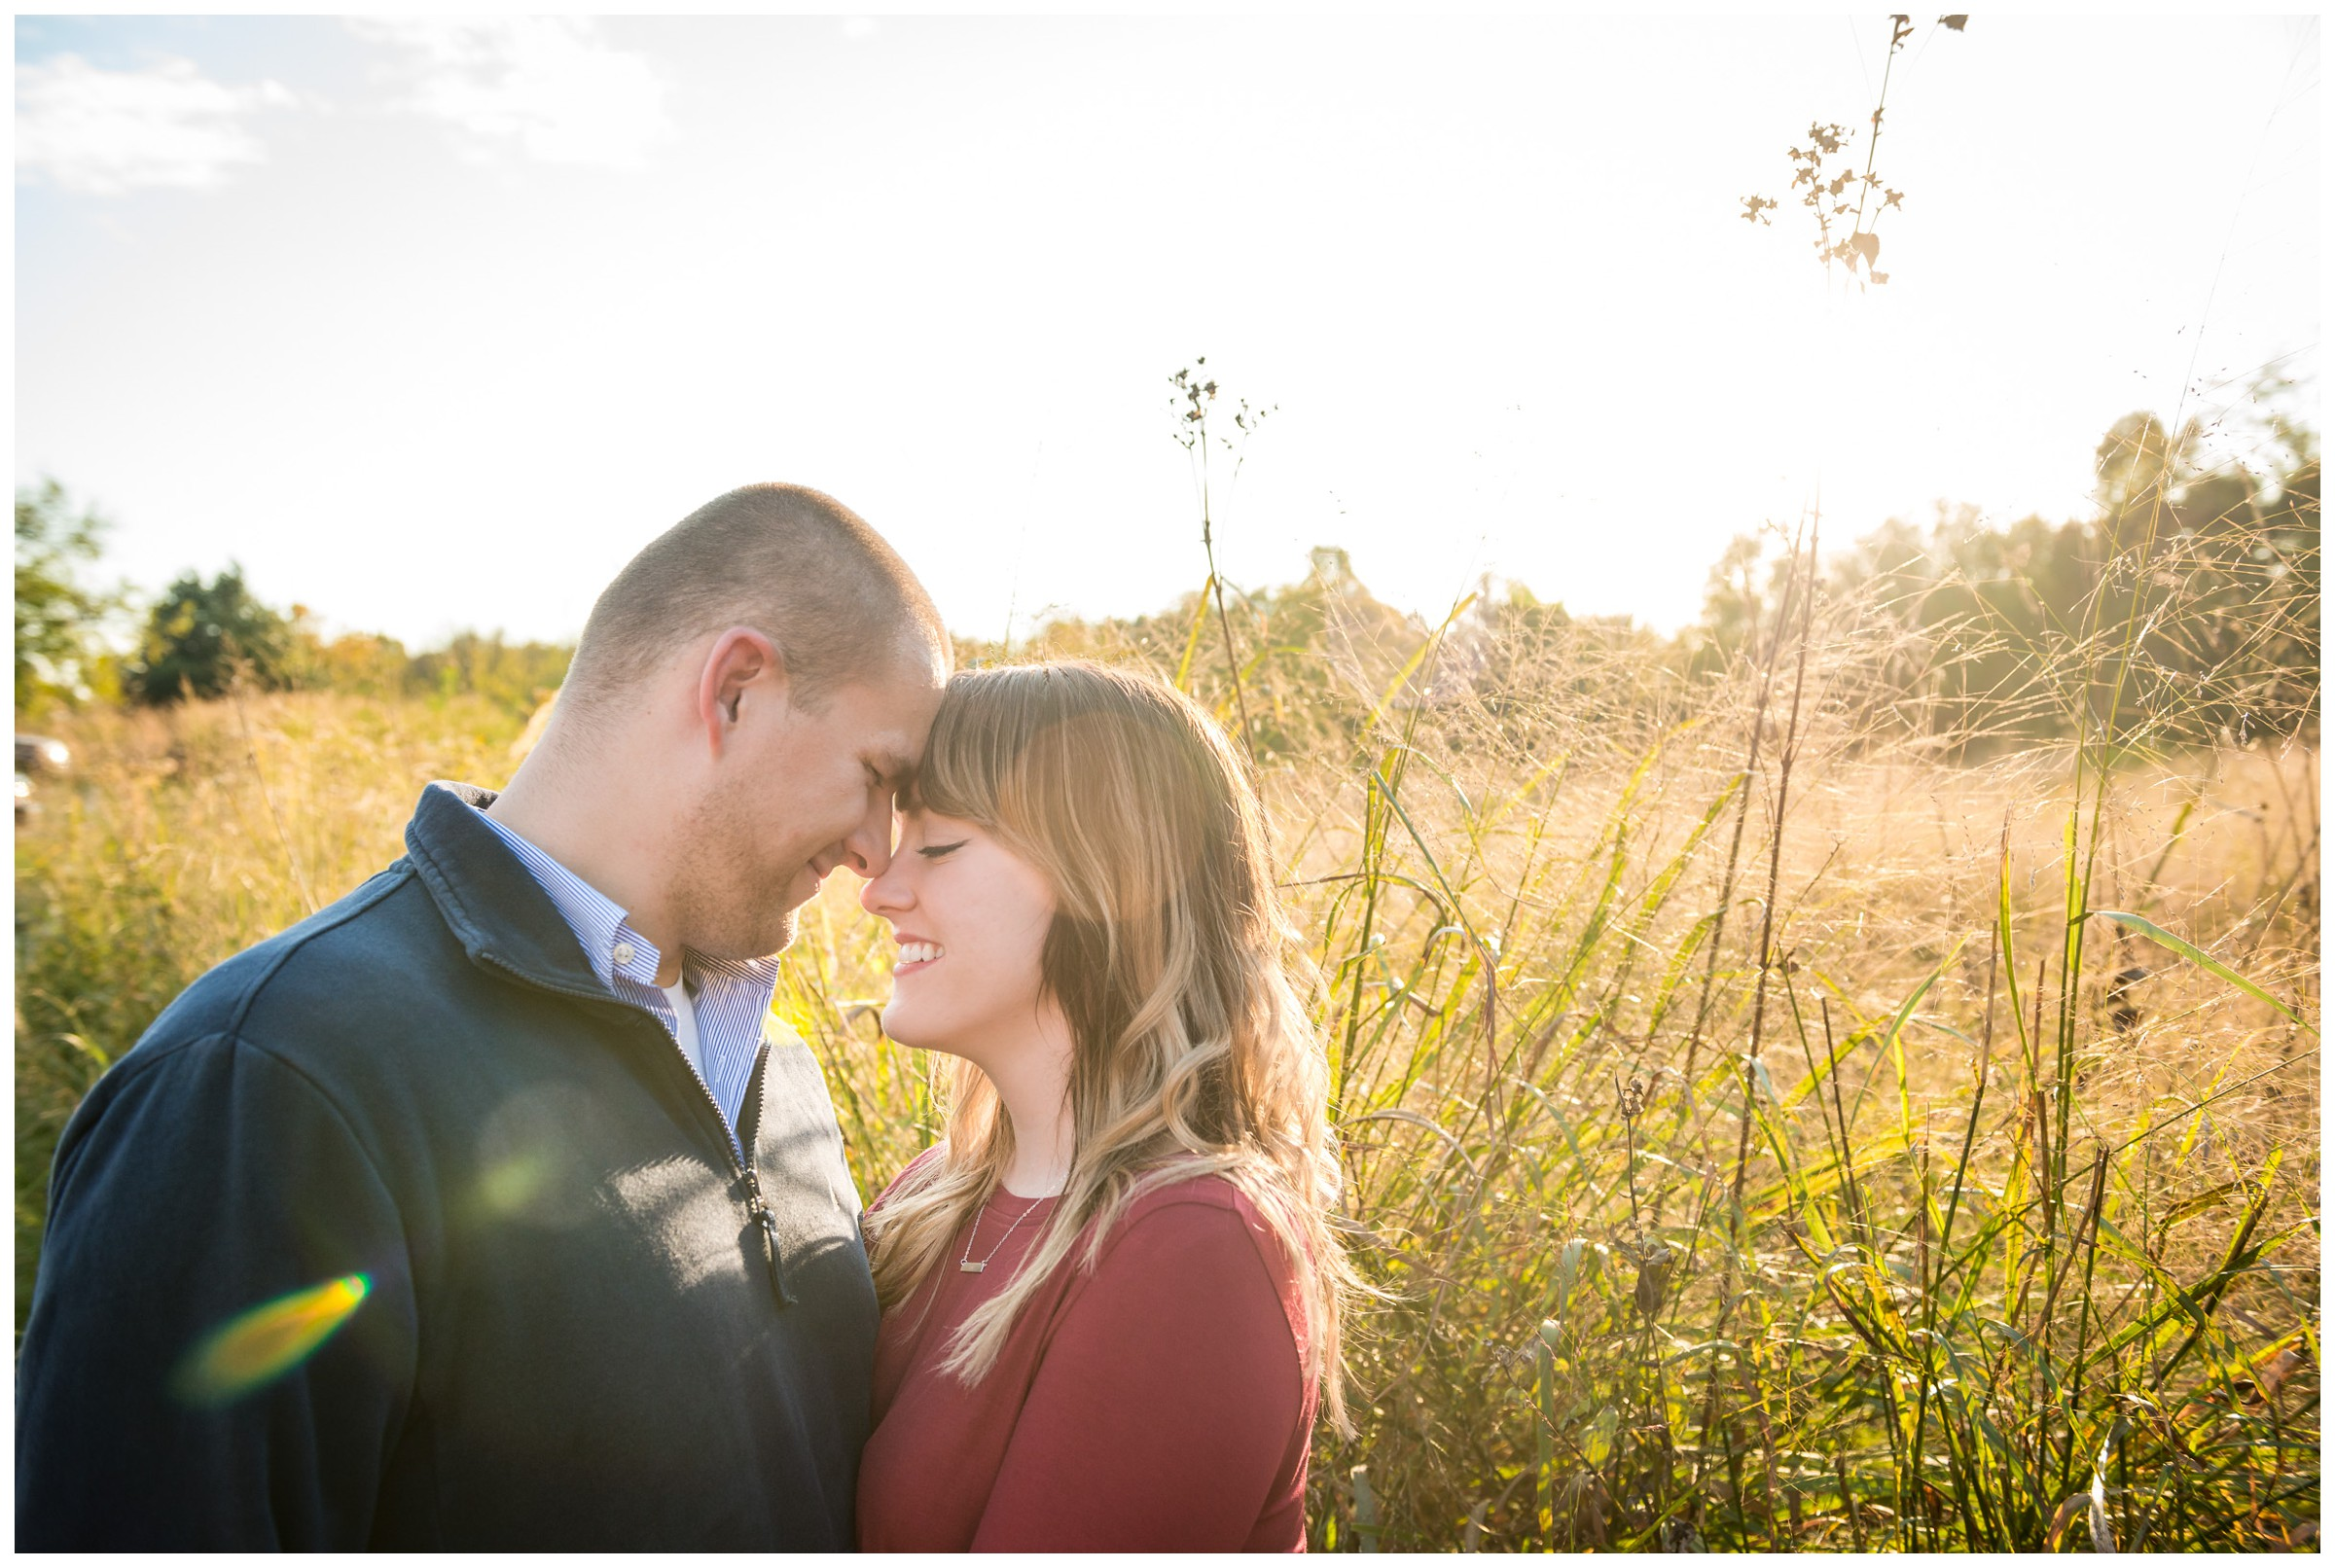 fall engagement photos in field at sunset in Fredericksburg, Virginia